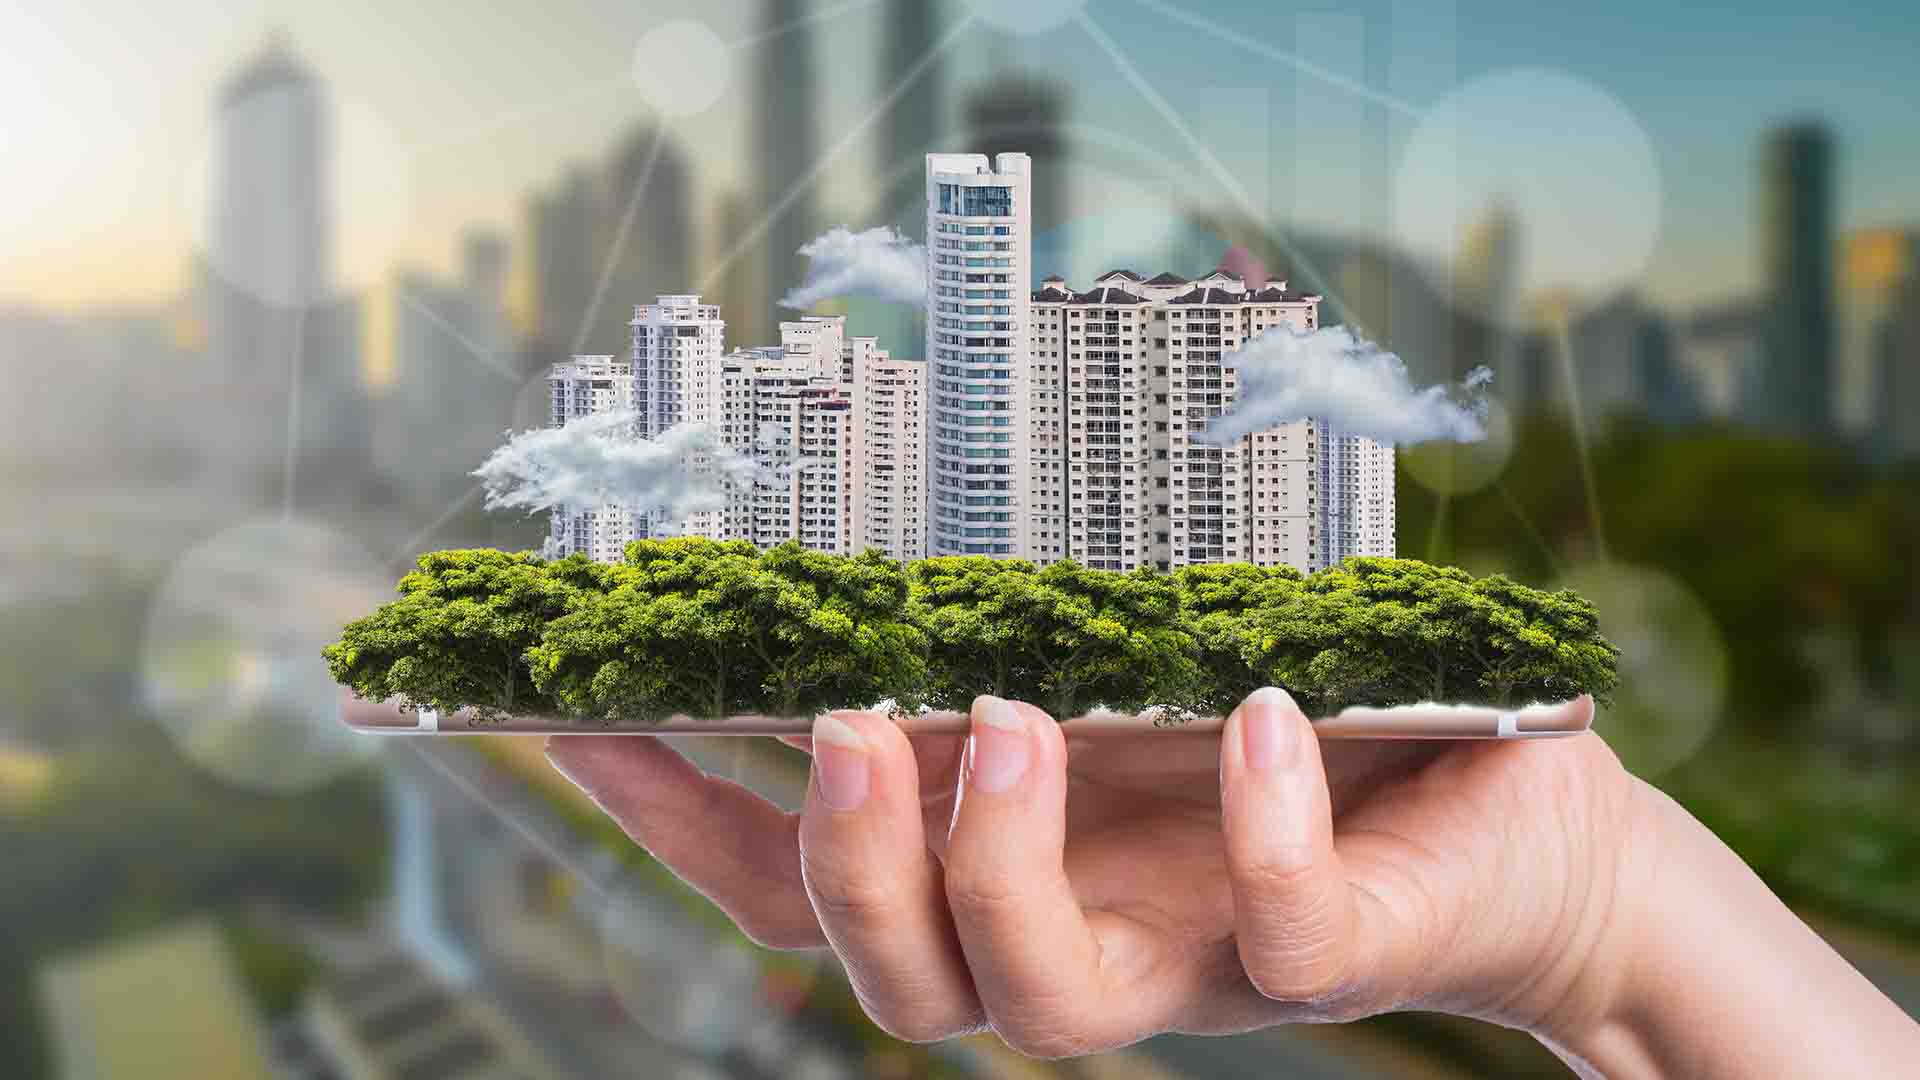 Rs.800 Crore For Smart Cities Up For Grabs